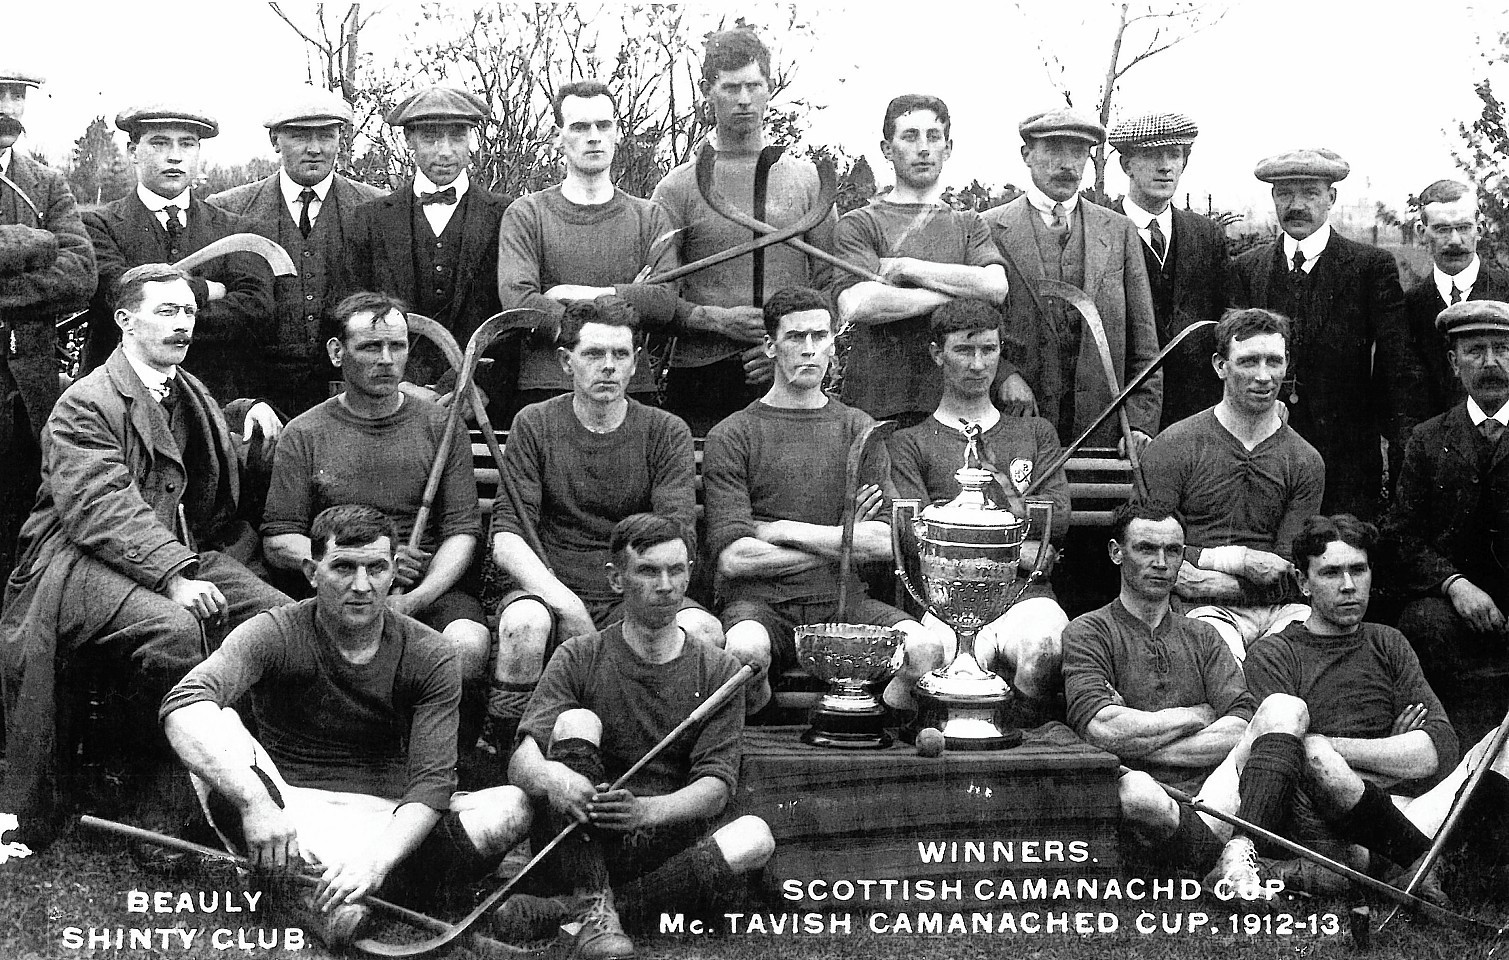 Beauly Shinty Club, winners of the Camanachd Cup in 1912-13